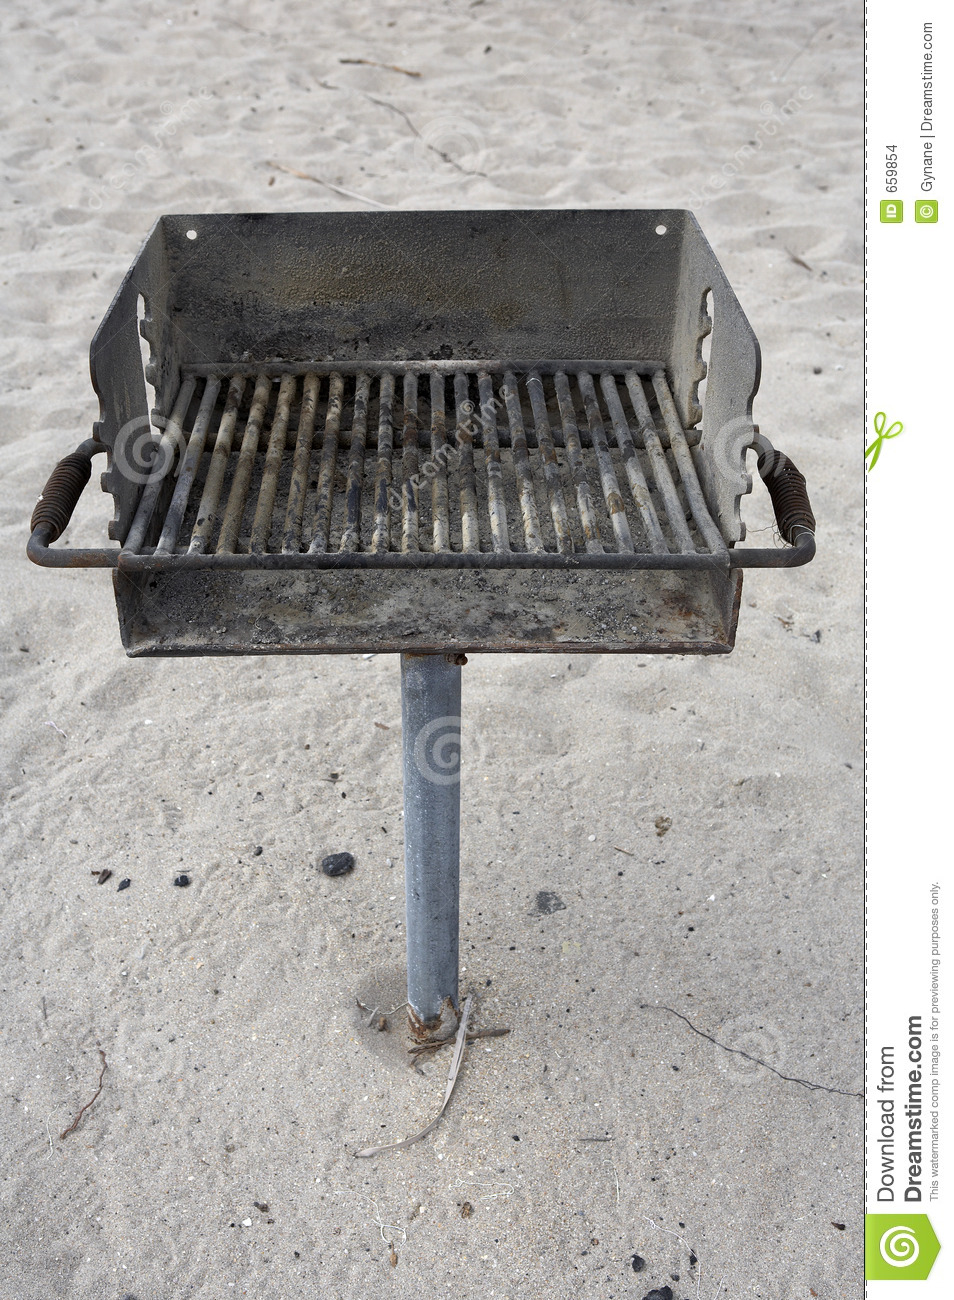 46 Hamilton Beach Grills Consumer Reviews and Complaints